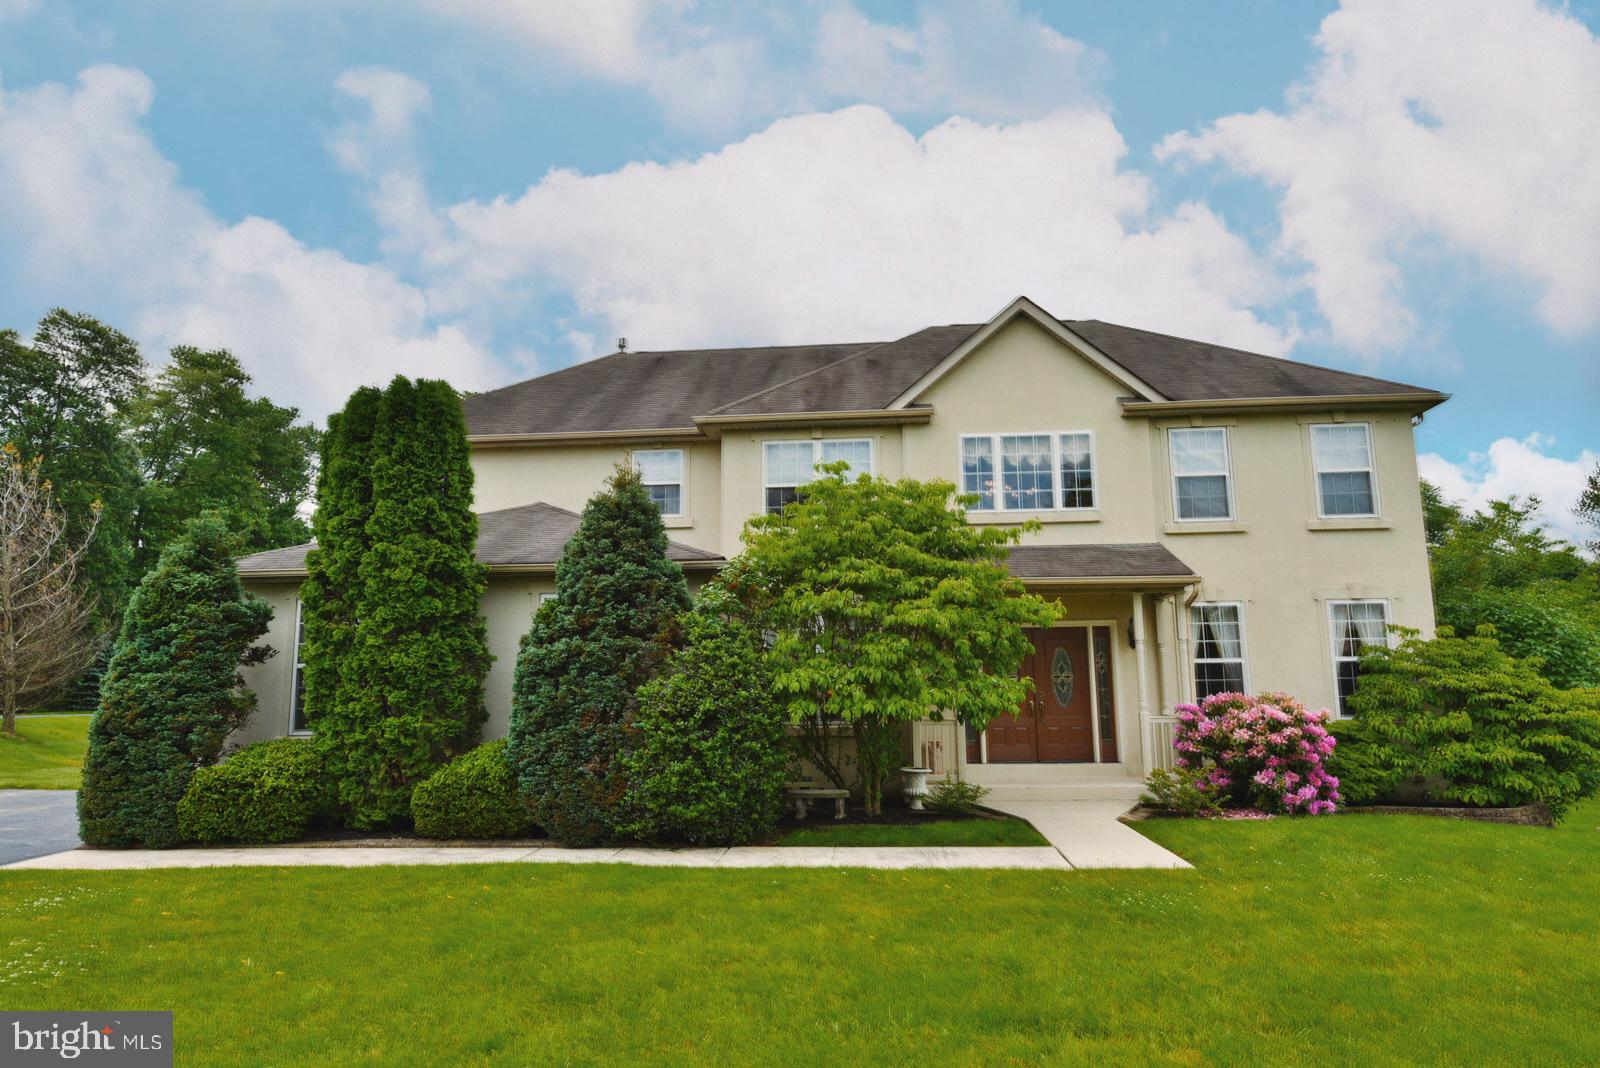 424 SILVER LEAF CIRCLE, COLLEGEVILLE, Pennsylvania 19426, 4 Bedrooms Bedrooms, ,4 BathroomsBathrooms,Single Family,For Sale,424 SILVER LEAF CIRCLE,PAMC682842